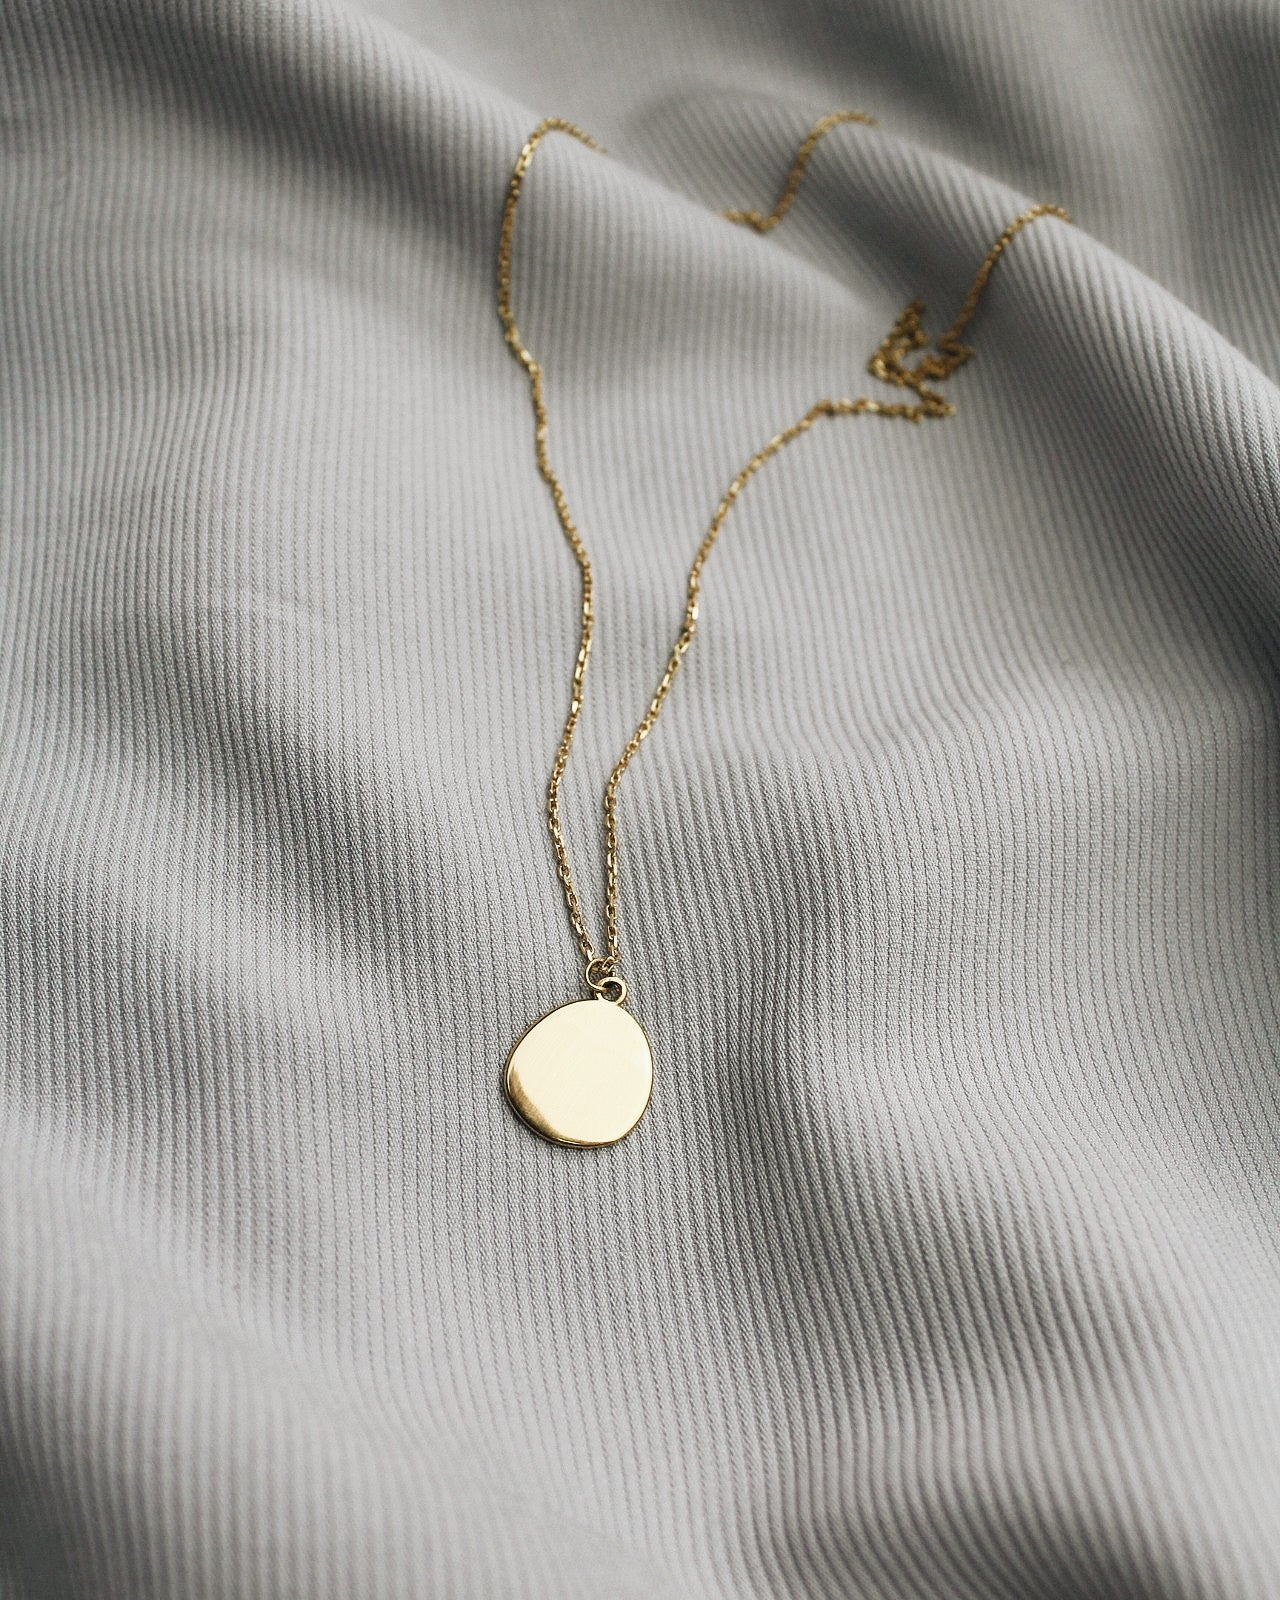 Organically Shaped Disk Necklace 24k Gold Vermeil